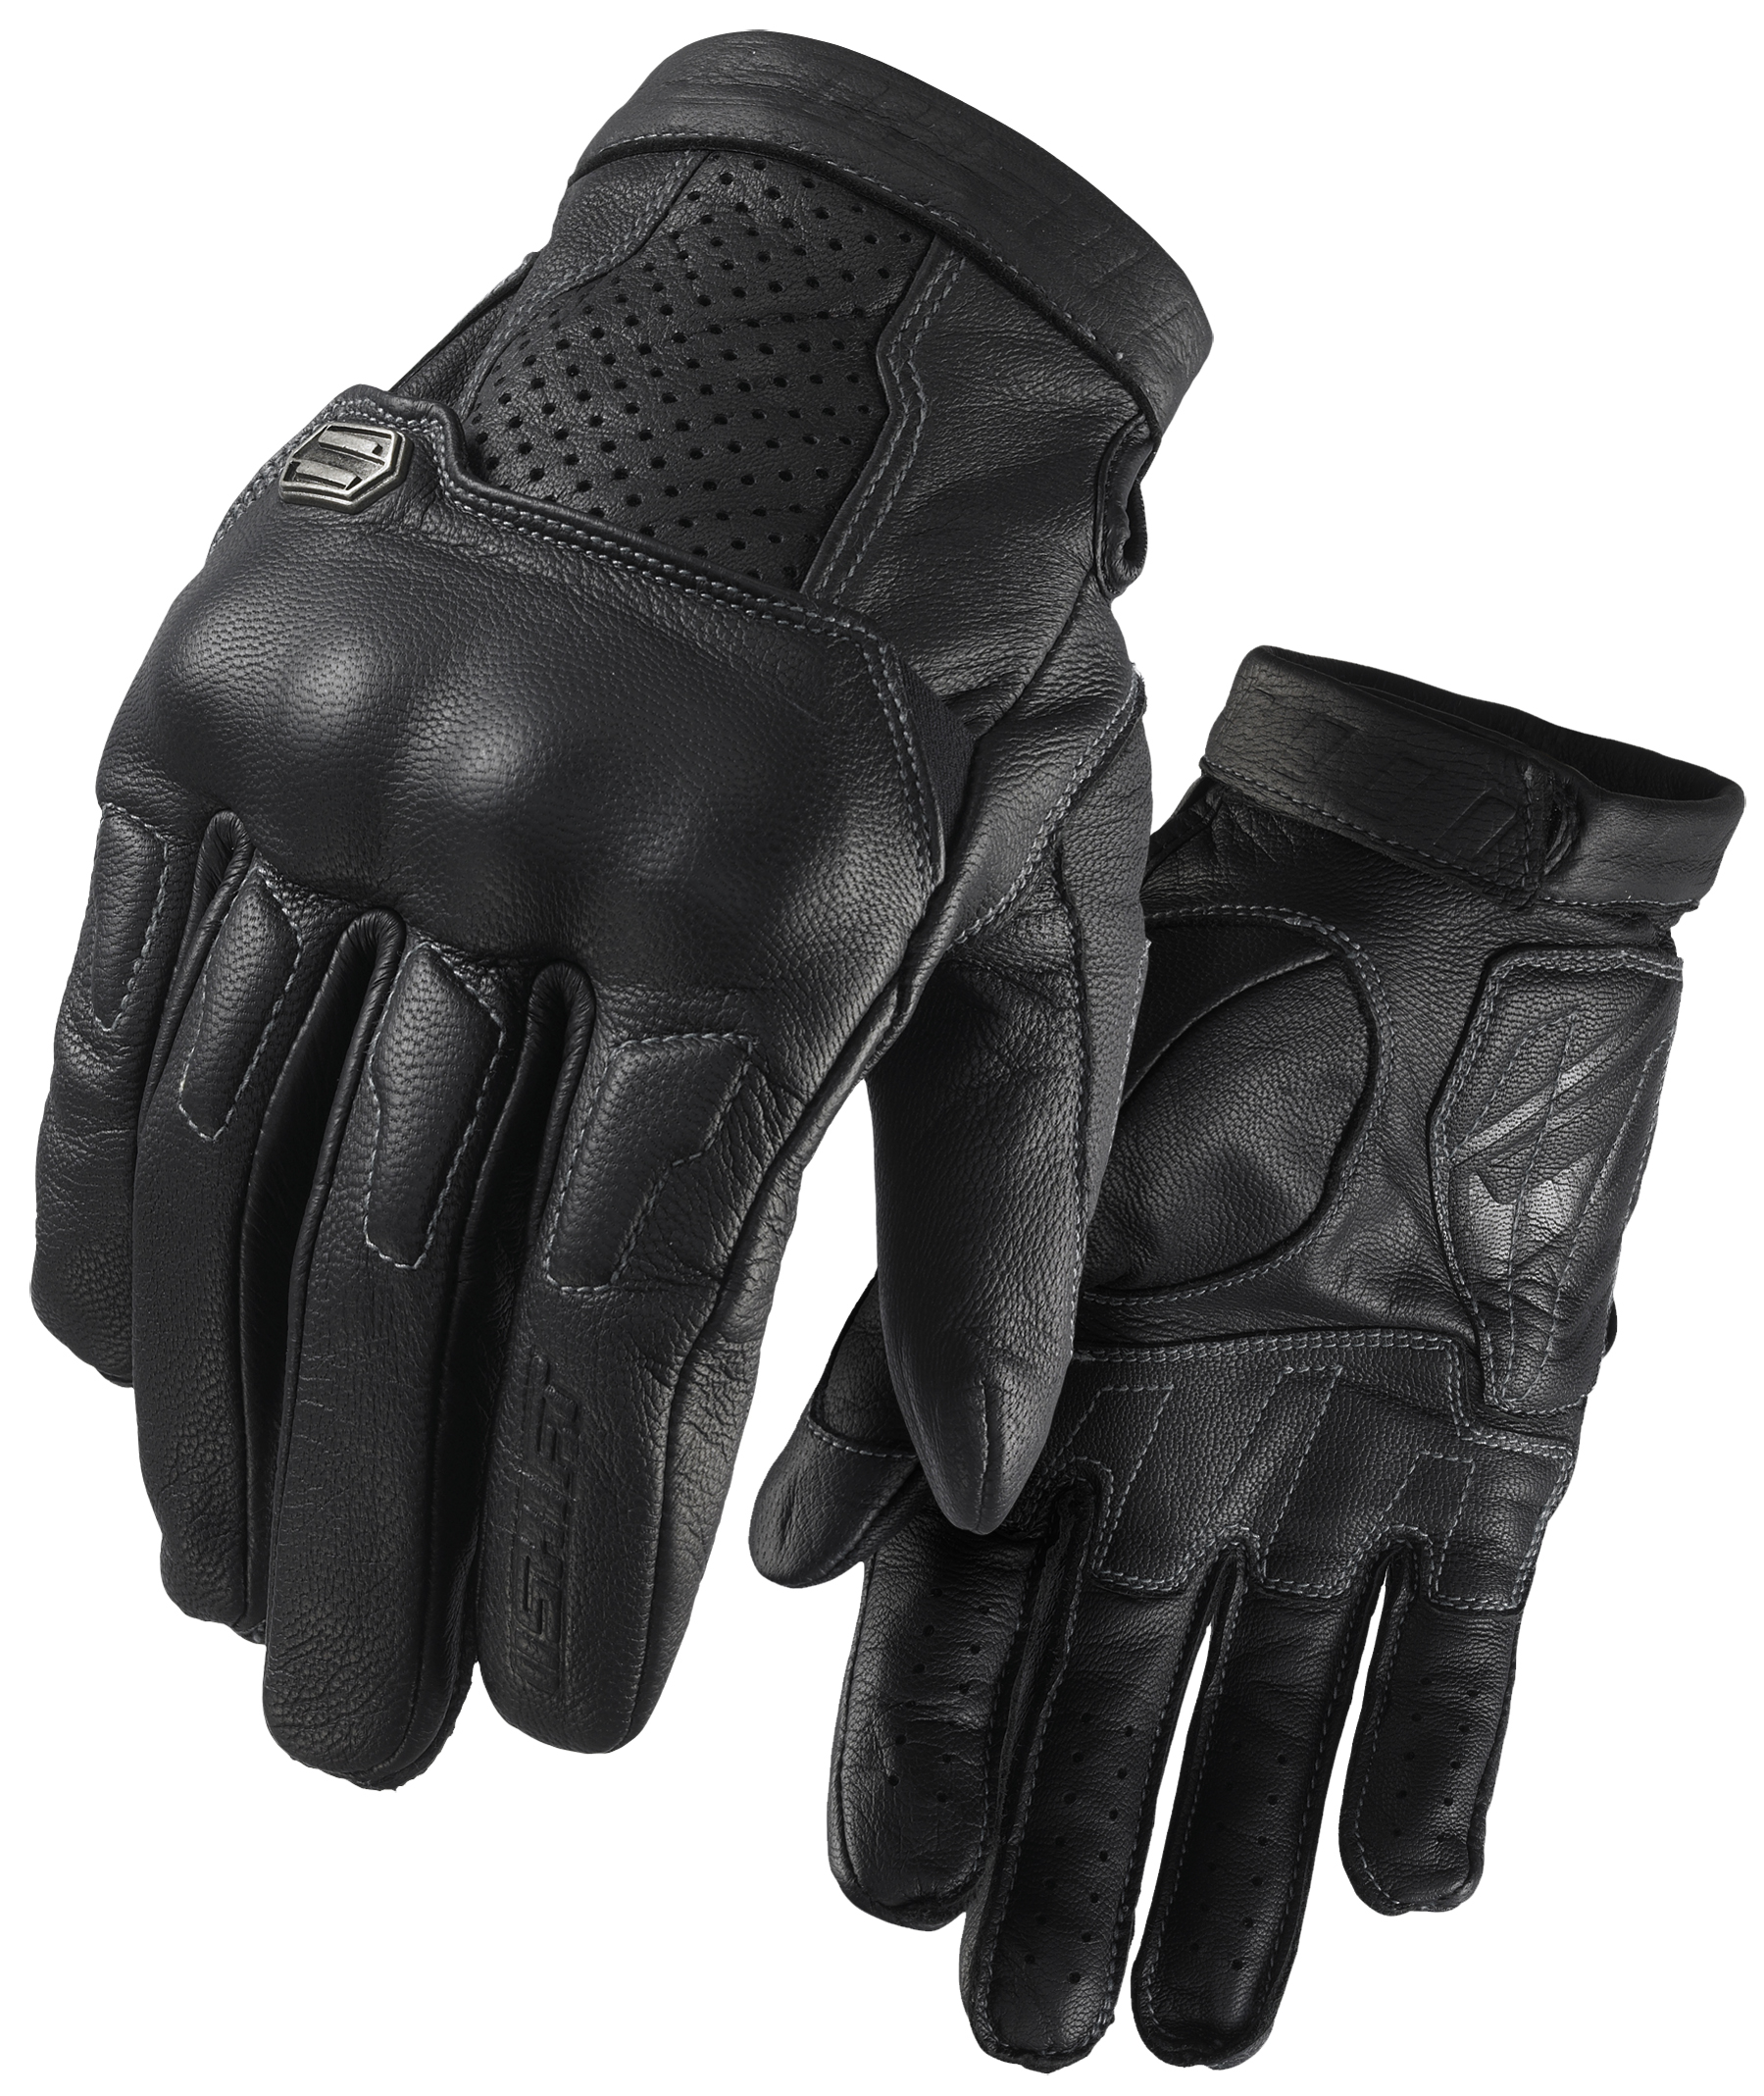 Motorcycle gloves hard knuckles - The Goal For This Glove Design Was To Create A Tough Low Key And Safe Glove To That End The Primer Exterior Uses Traditional Motorcycle Materials